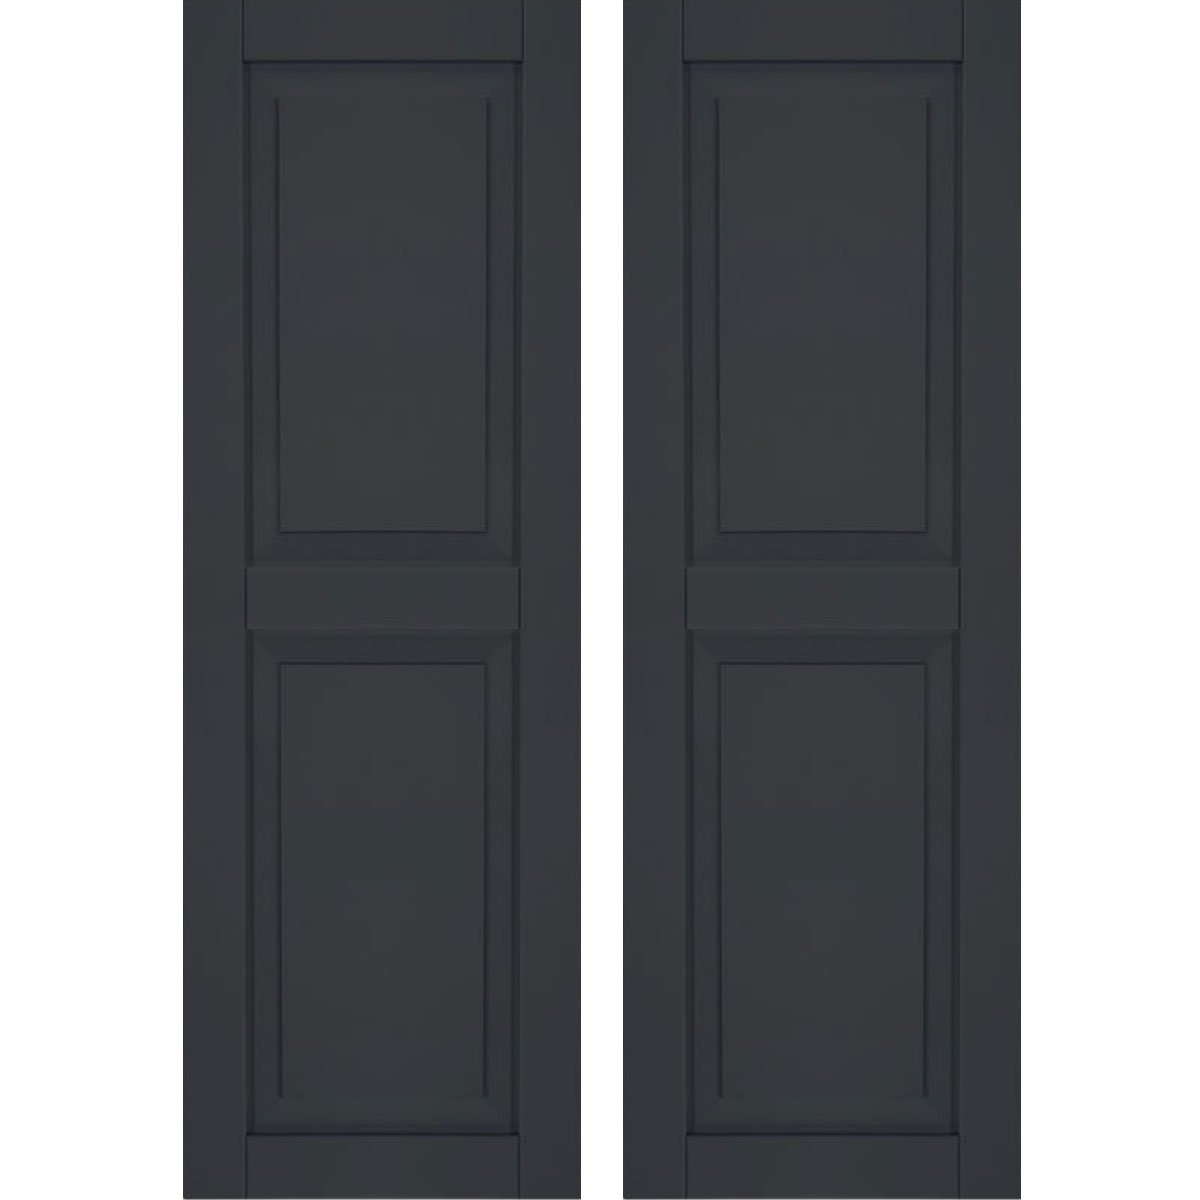 Ekena Millwork CWR15X064BLC Exterior Composite Wood Raised Panel Shutters with Installation Brackets (Per Pair), Black, 15''W x 64''H by Ekena Millwork